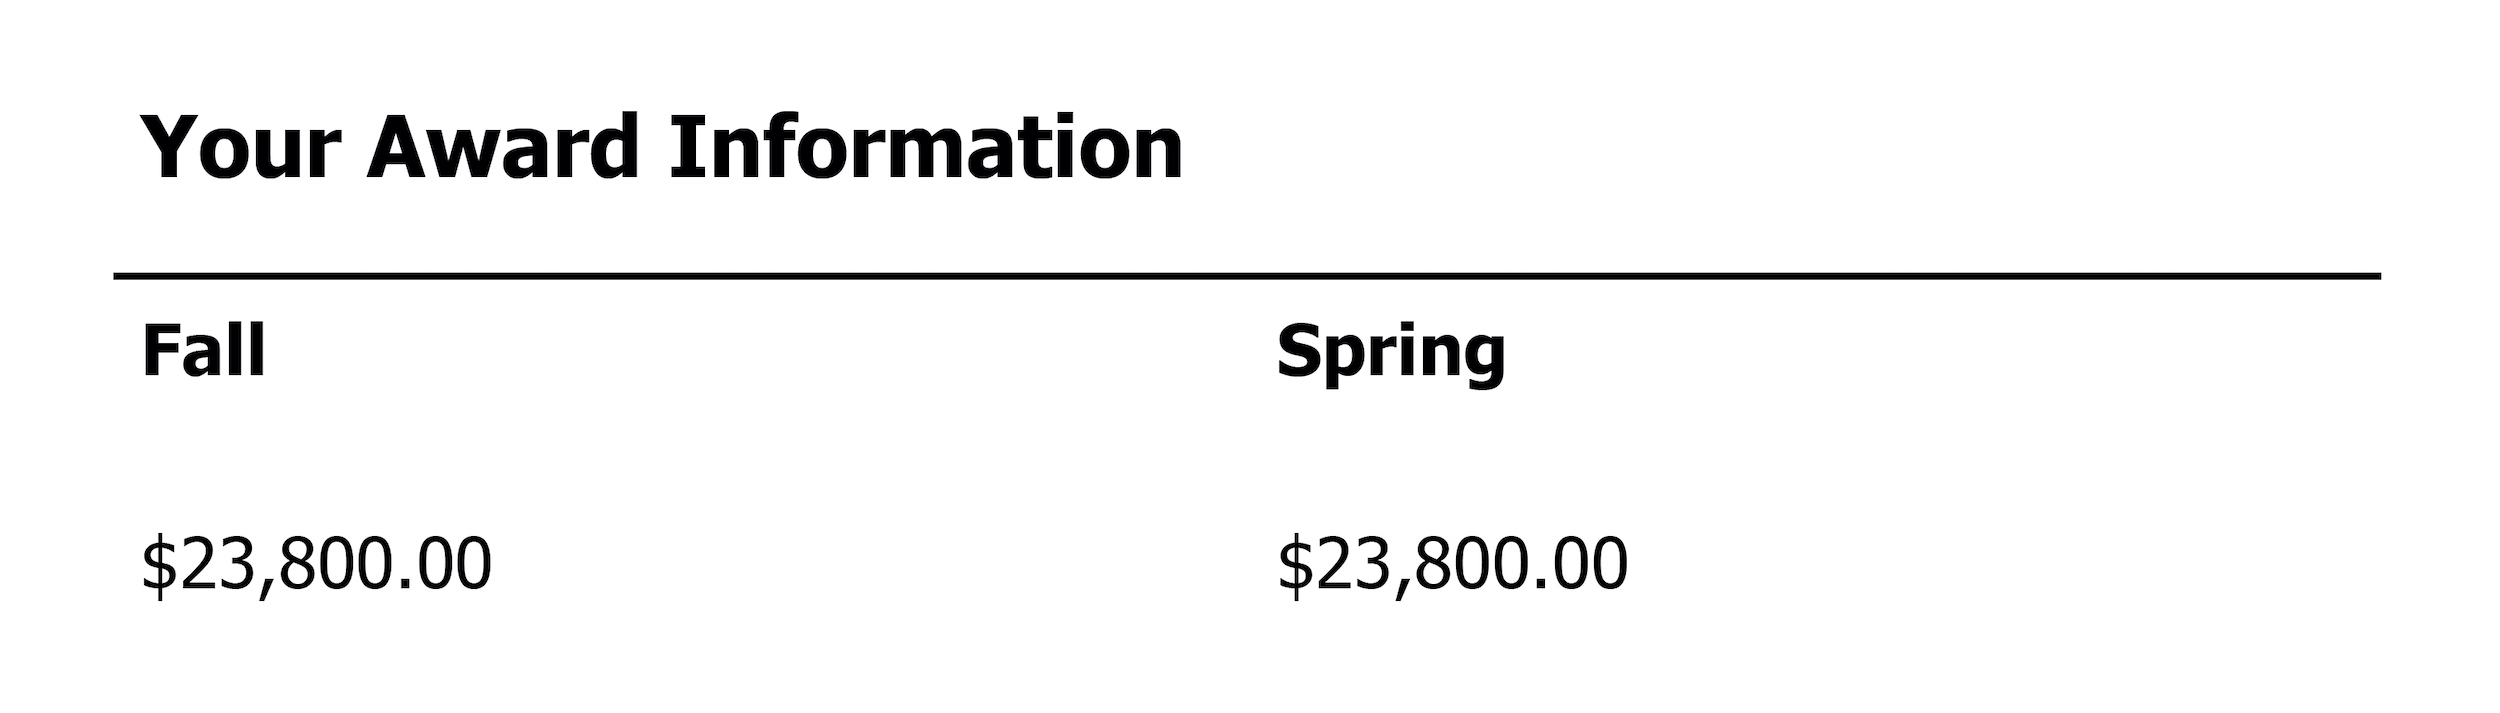 A chart of award information from a financial aid award.